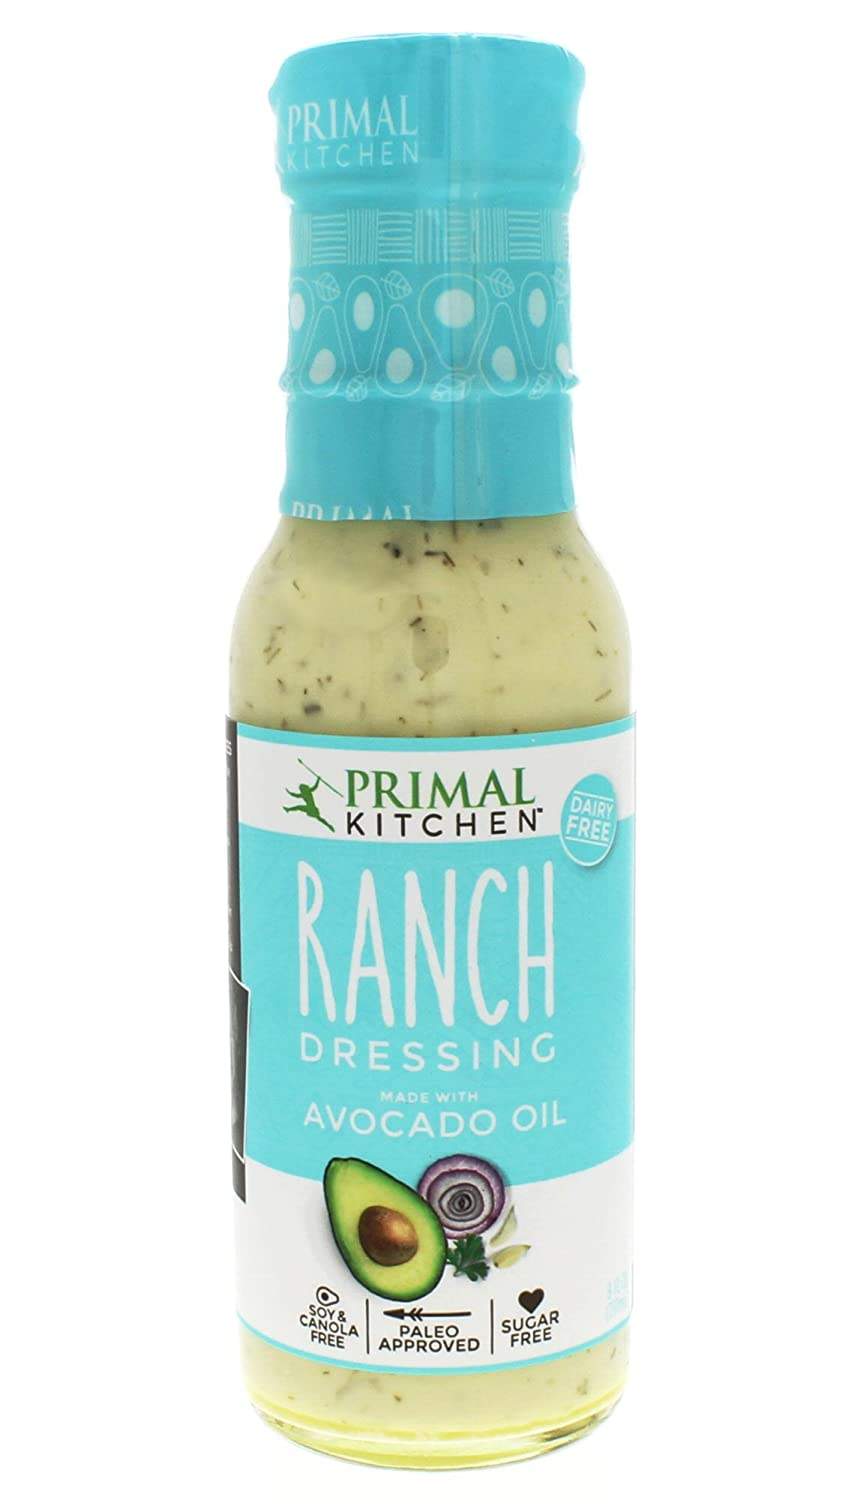 Primal Kitchen Ranch >> Primal Kitchen Ranch Dressing Avocado Oil Based Organic Dairy Free Vegan Paleo Approved 8 Ounce